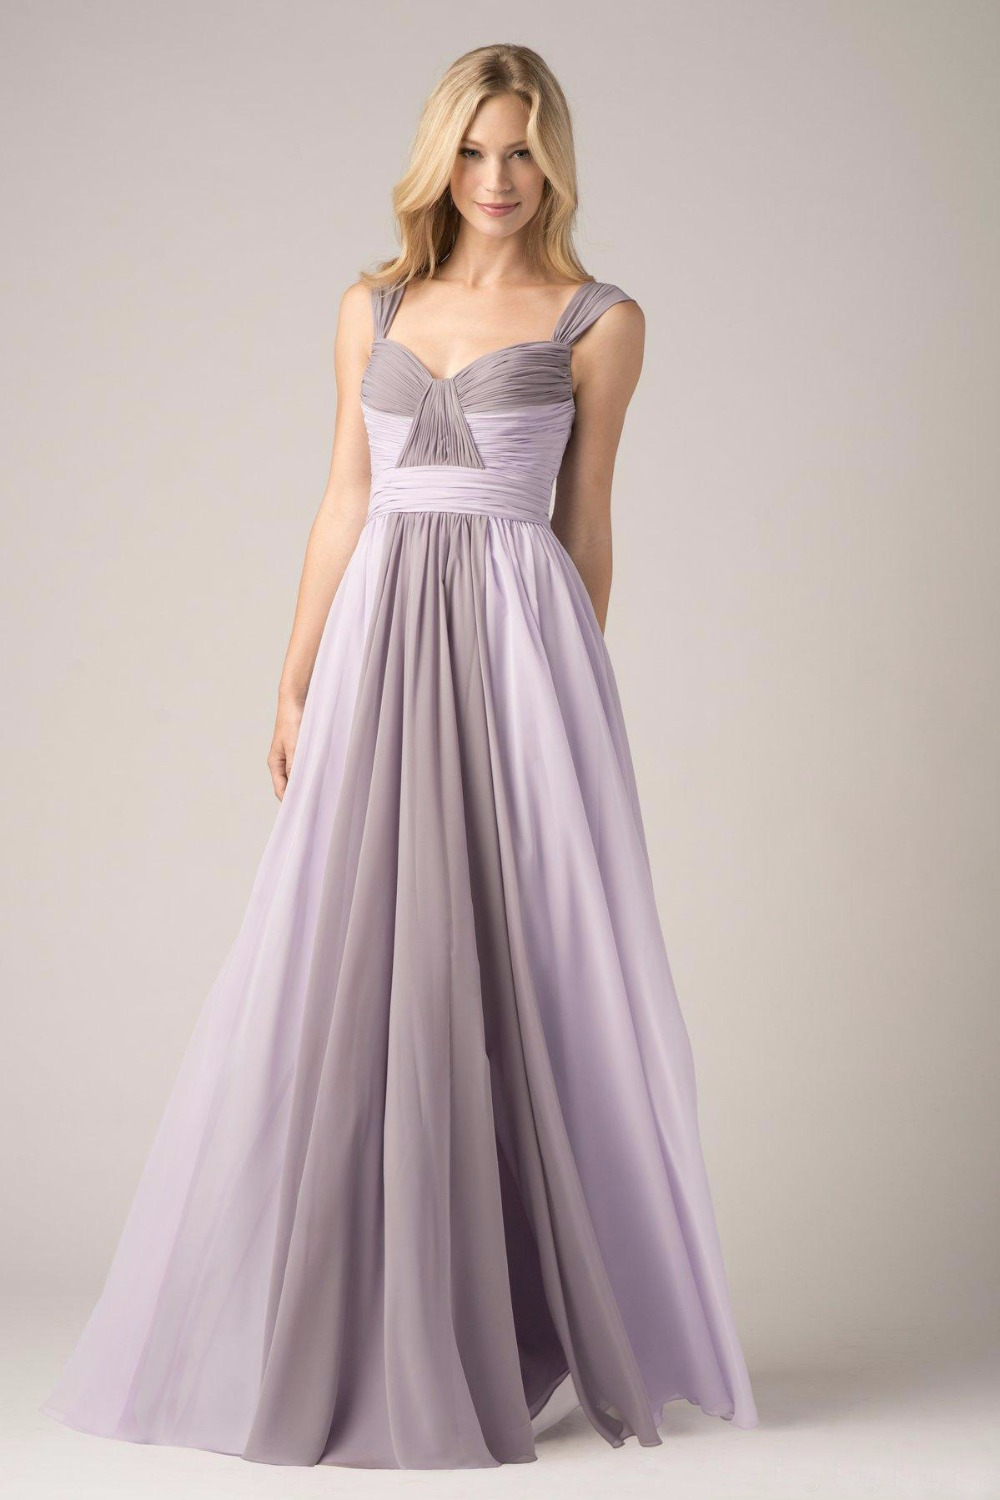 Popular silver bridesmaid dress buy cheap silver for Silver and purple wedding dresses